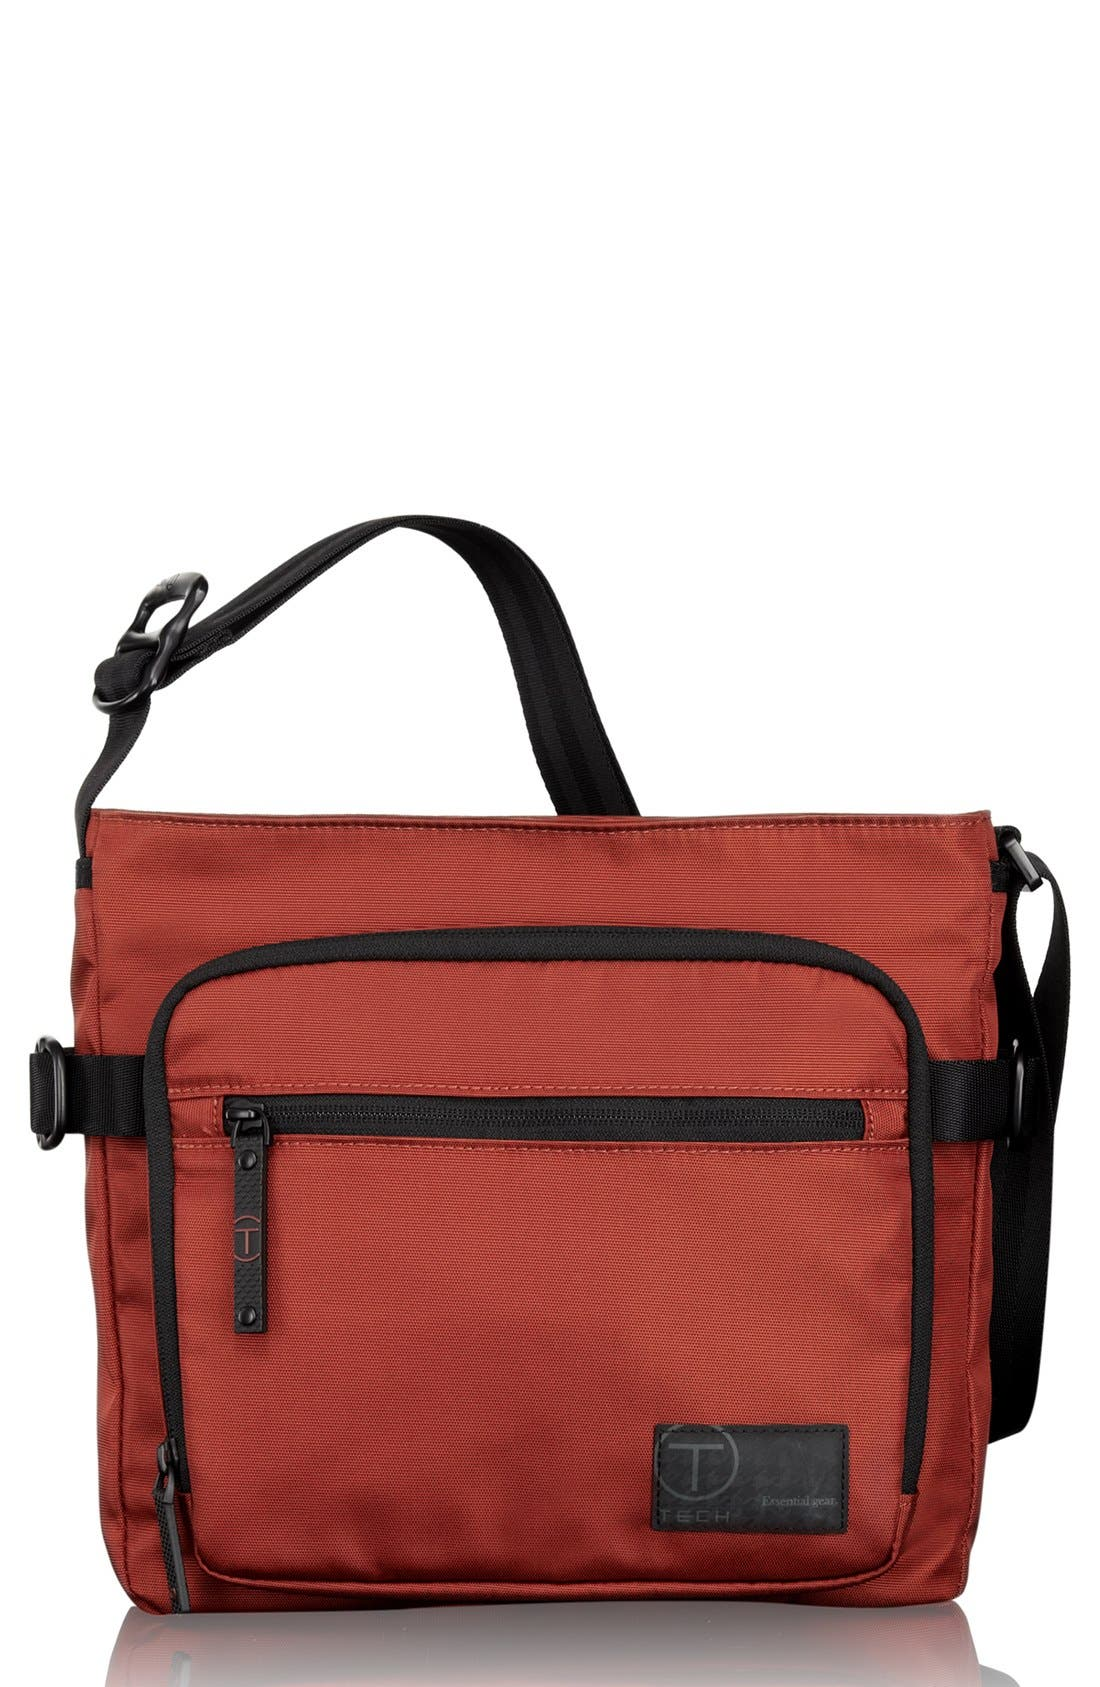 Alternate Image 1 Selected - T-Tech by Tumi 'Icon - King' Crossbody Bag